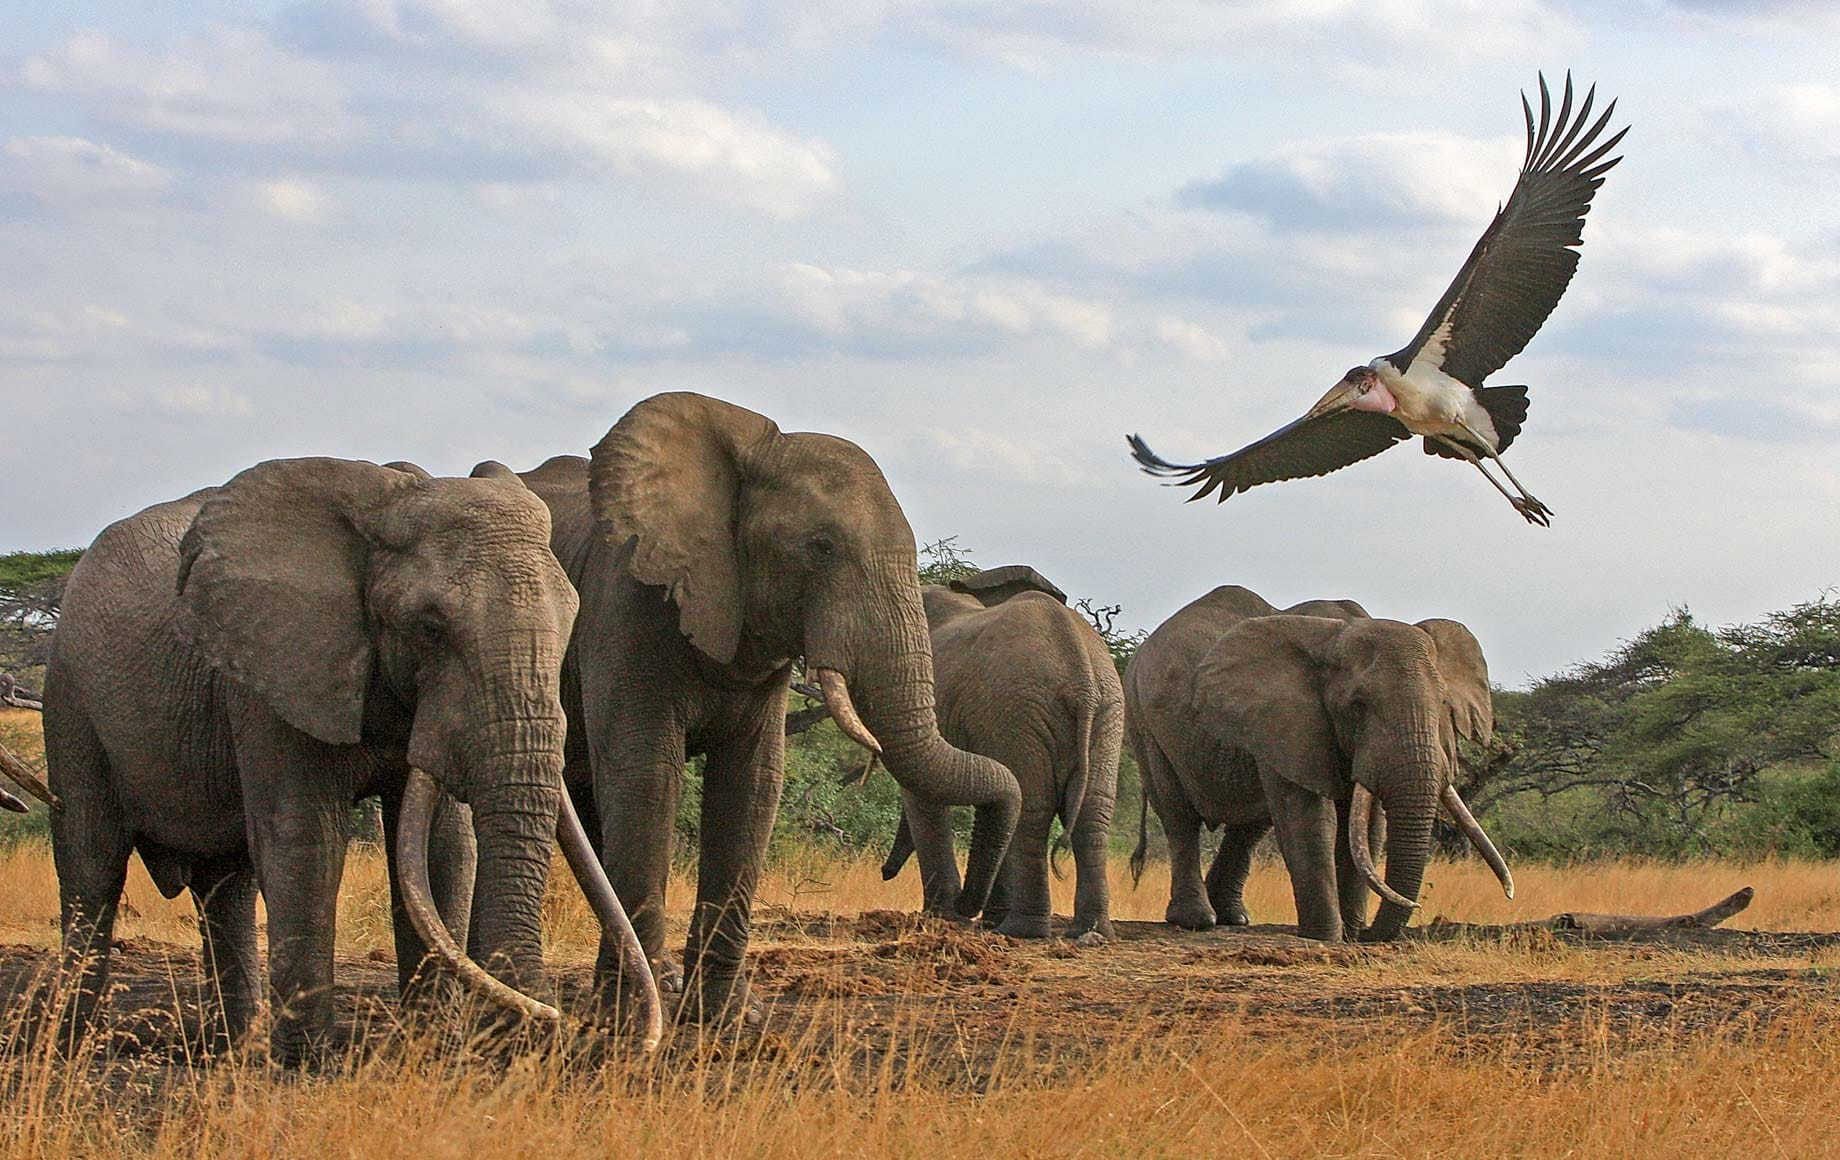 Family of elephants and bird flying with freedom at Chyulu Hills